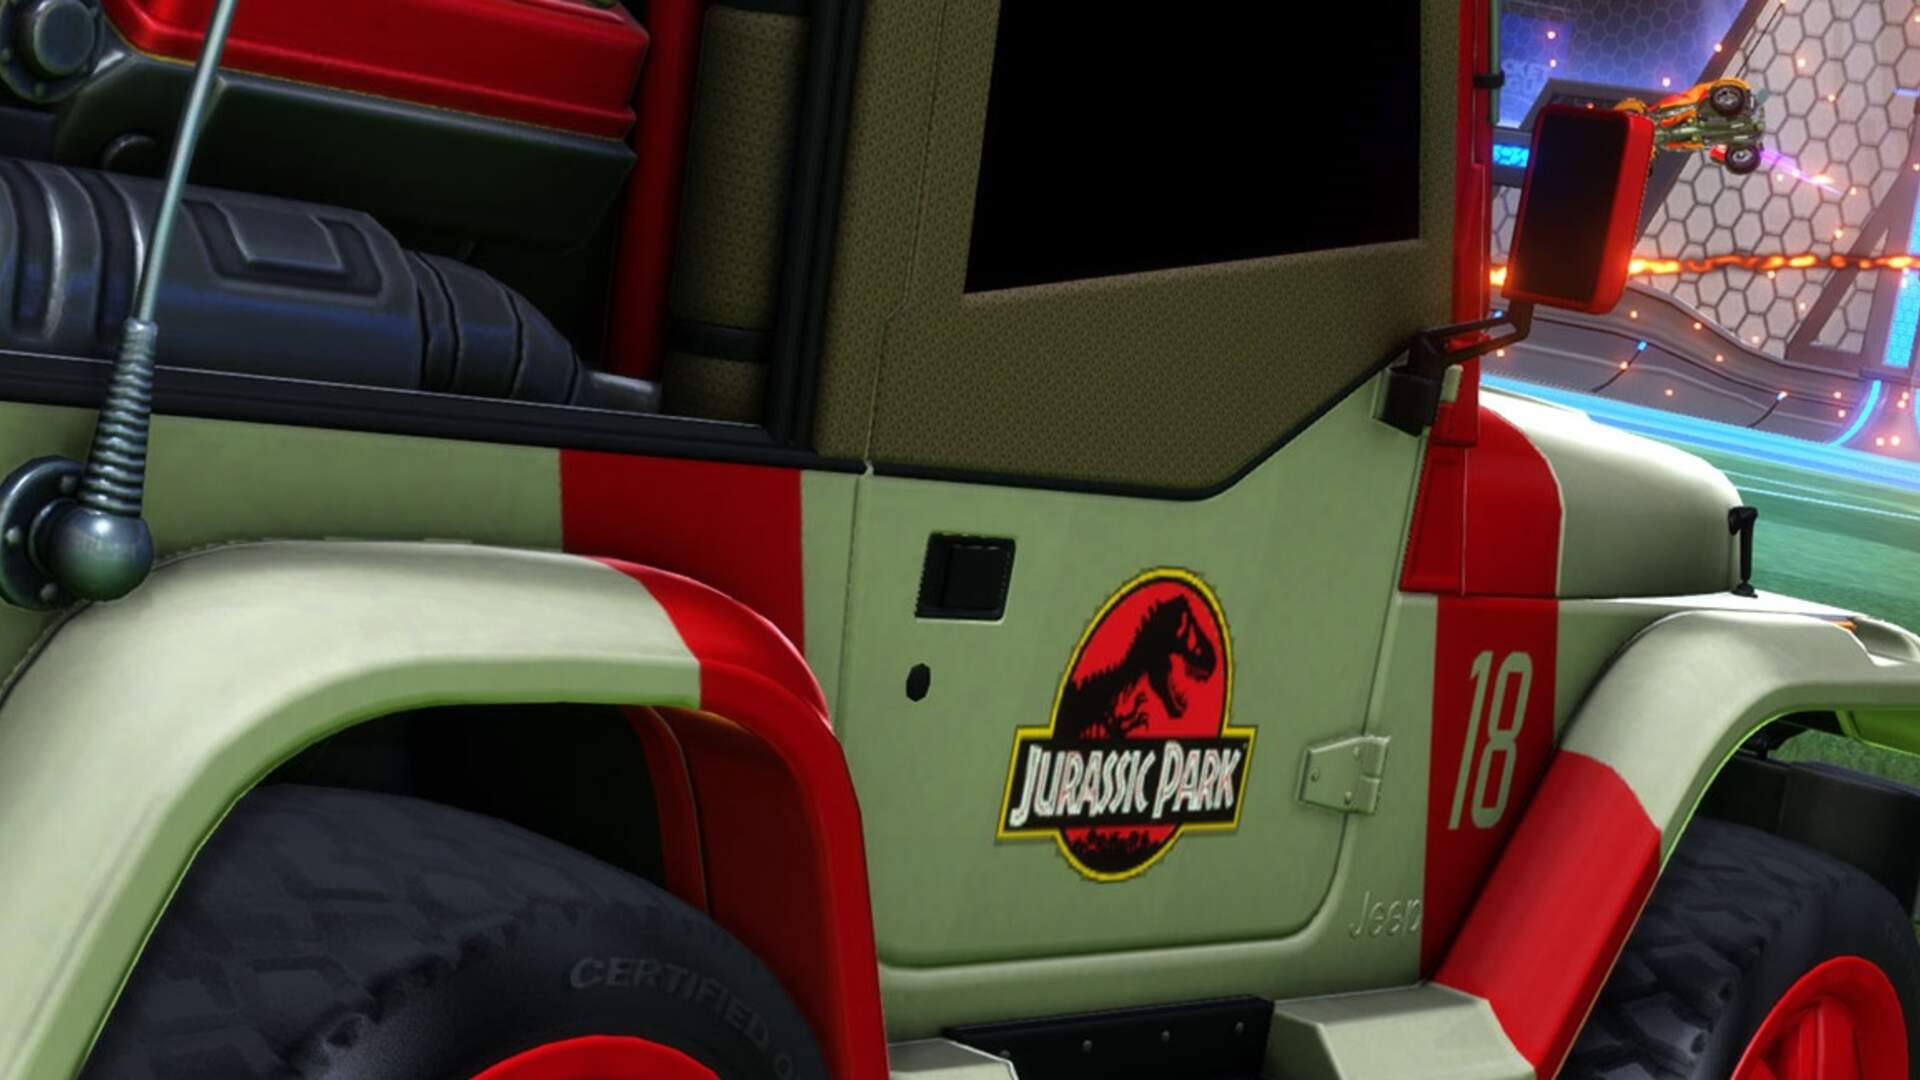 Jurassic Park Jeep is Coming to Rocket League